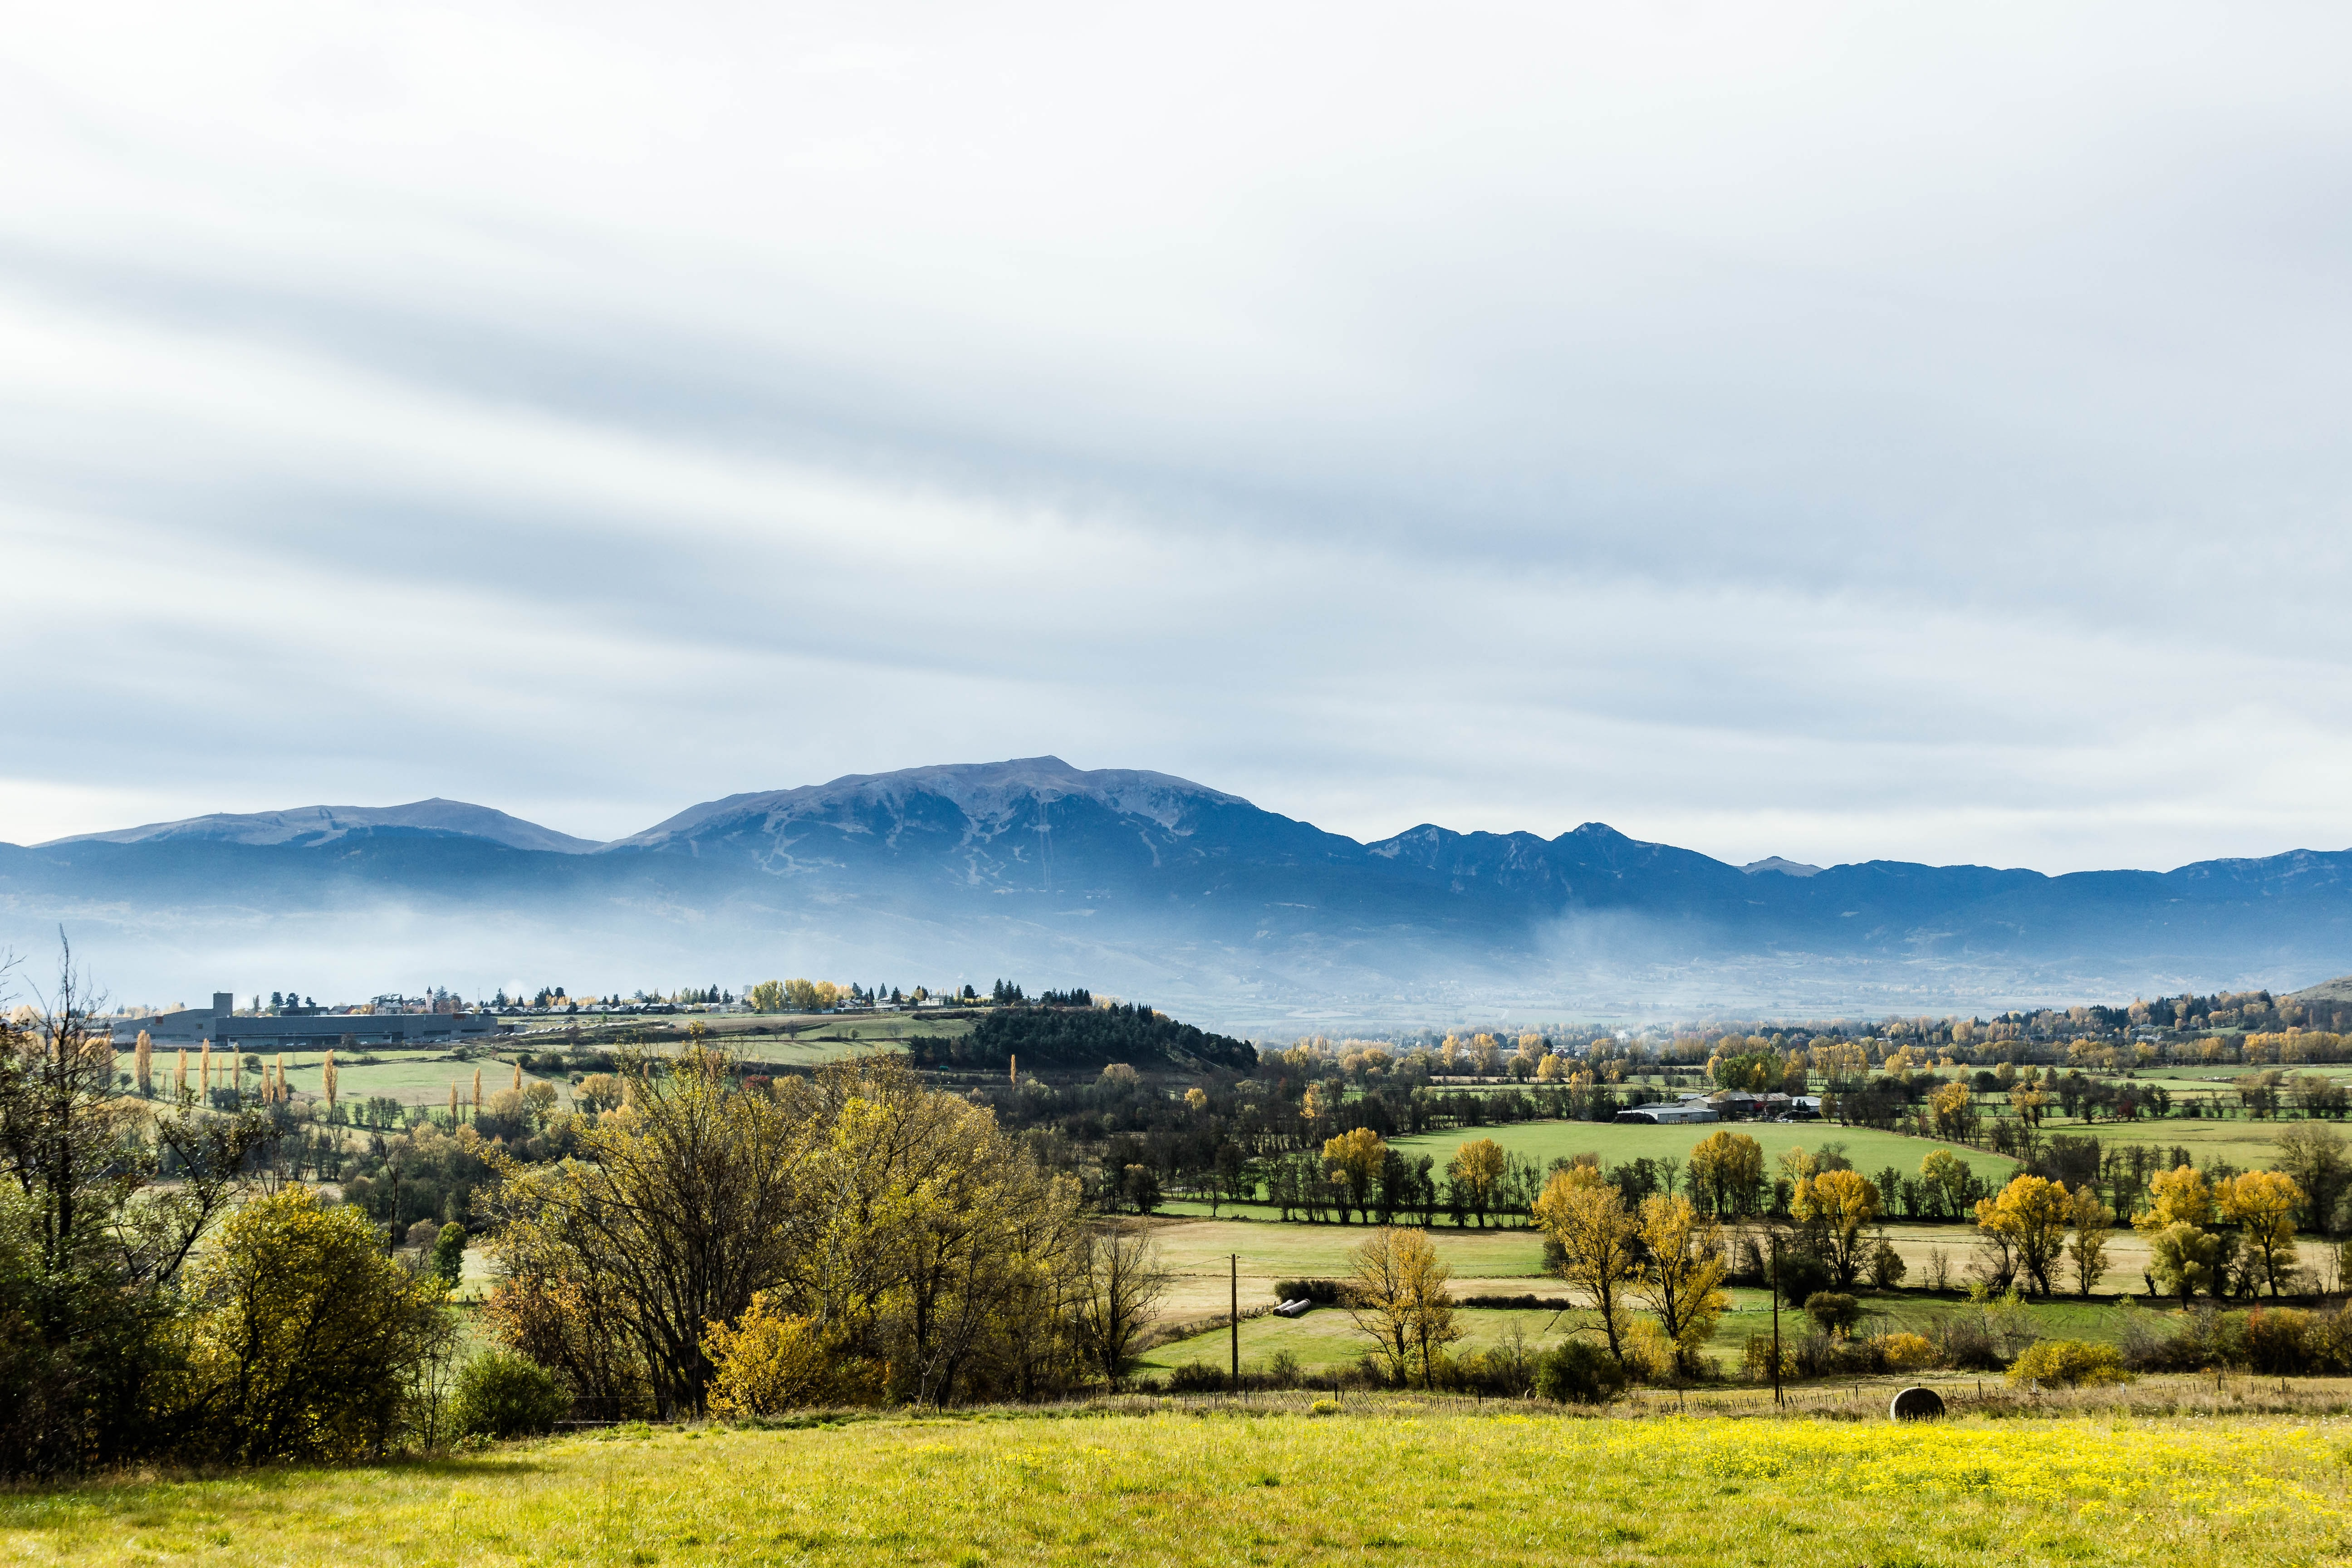 A woody countryside landscape with a snow-capped mountain towering over the village